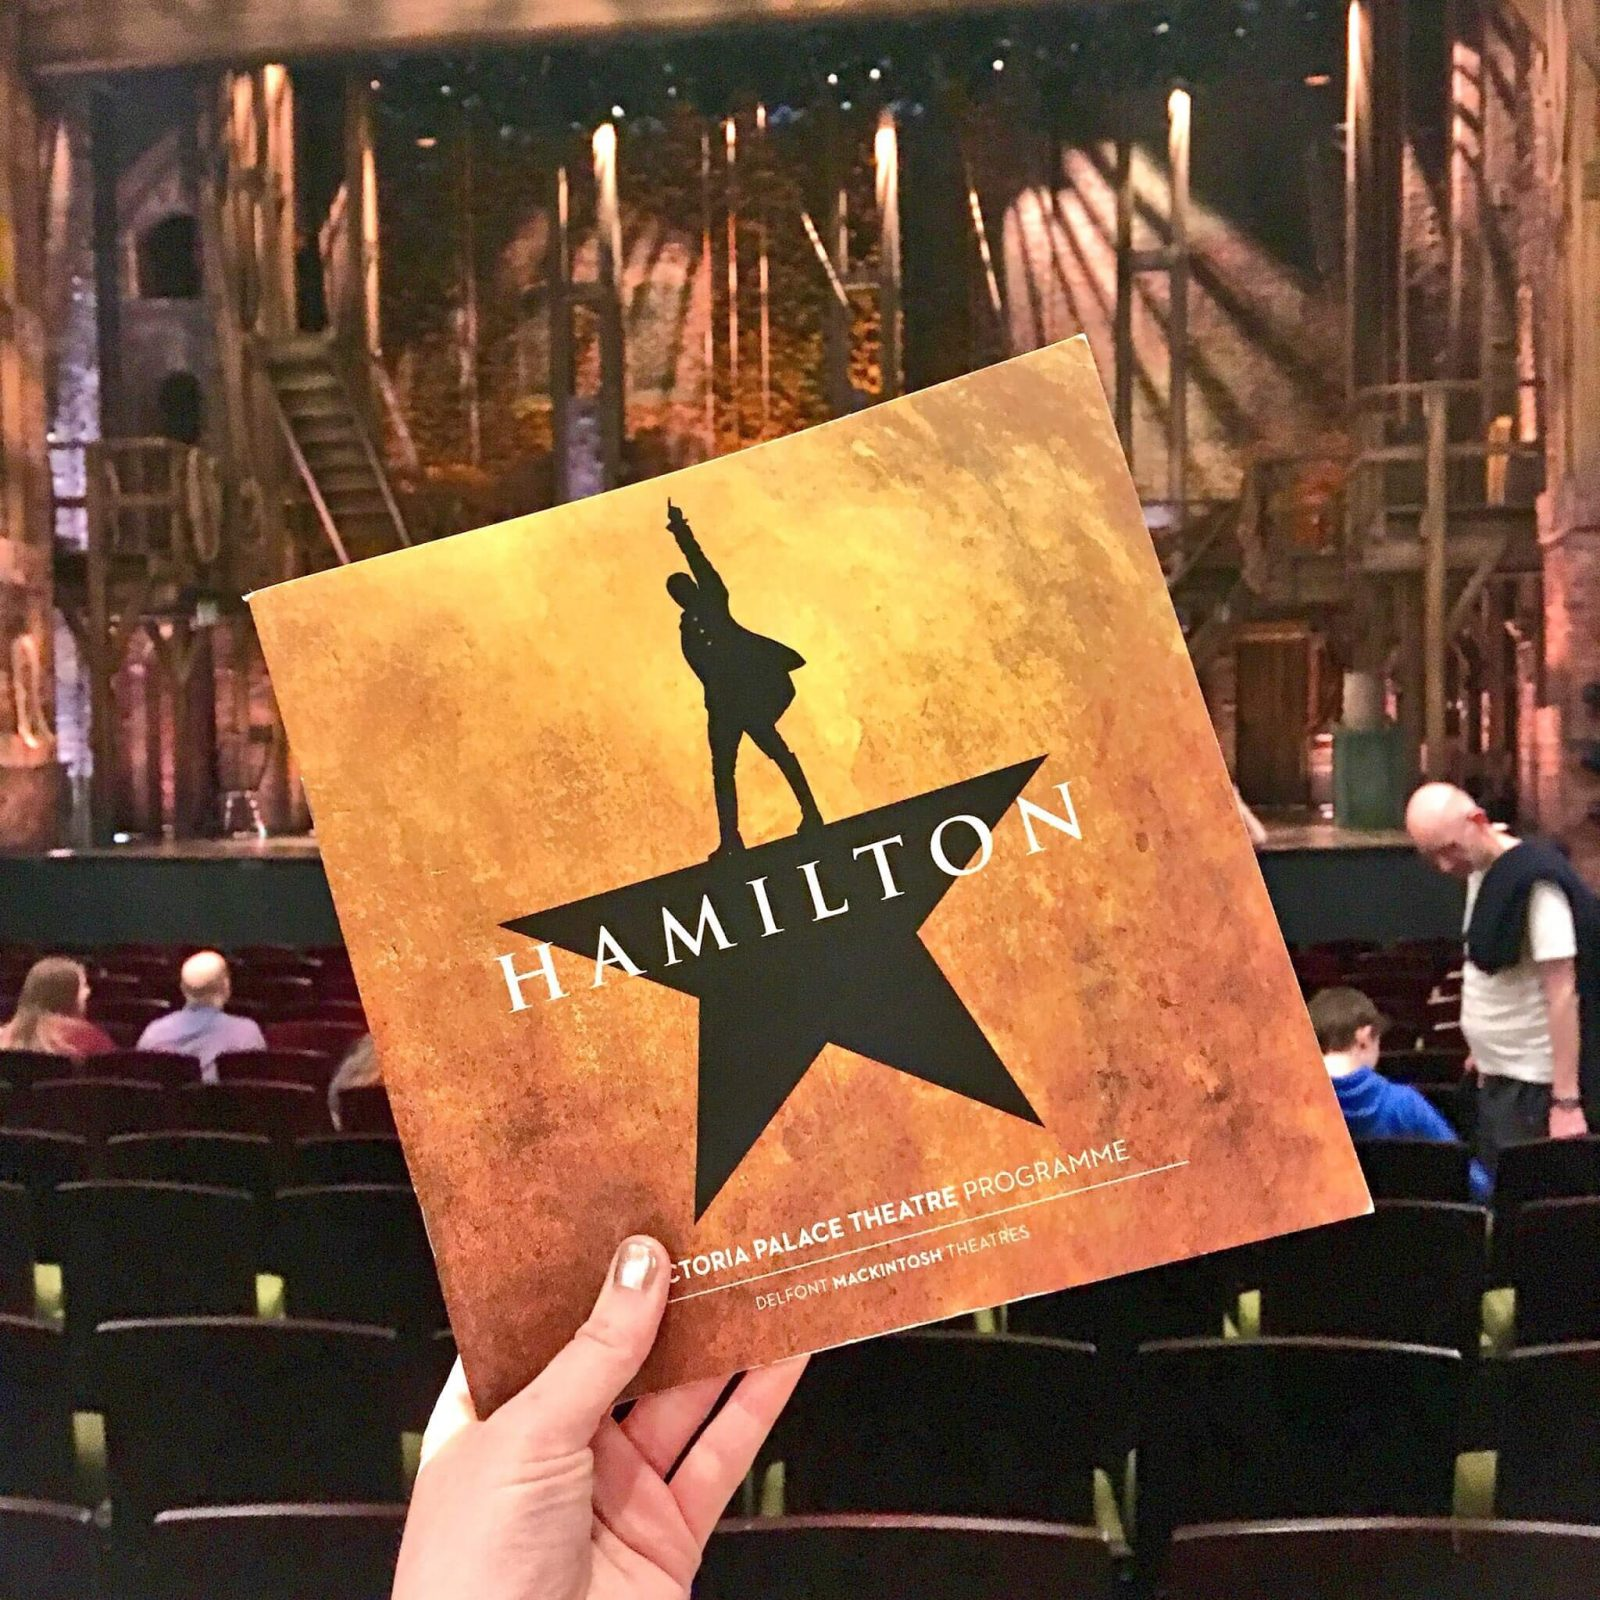 hand holding yellow square hamilton theatre programme, with hamilton stage and set visible in the background